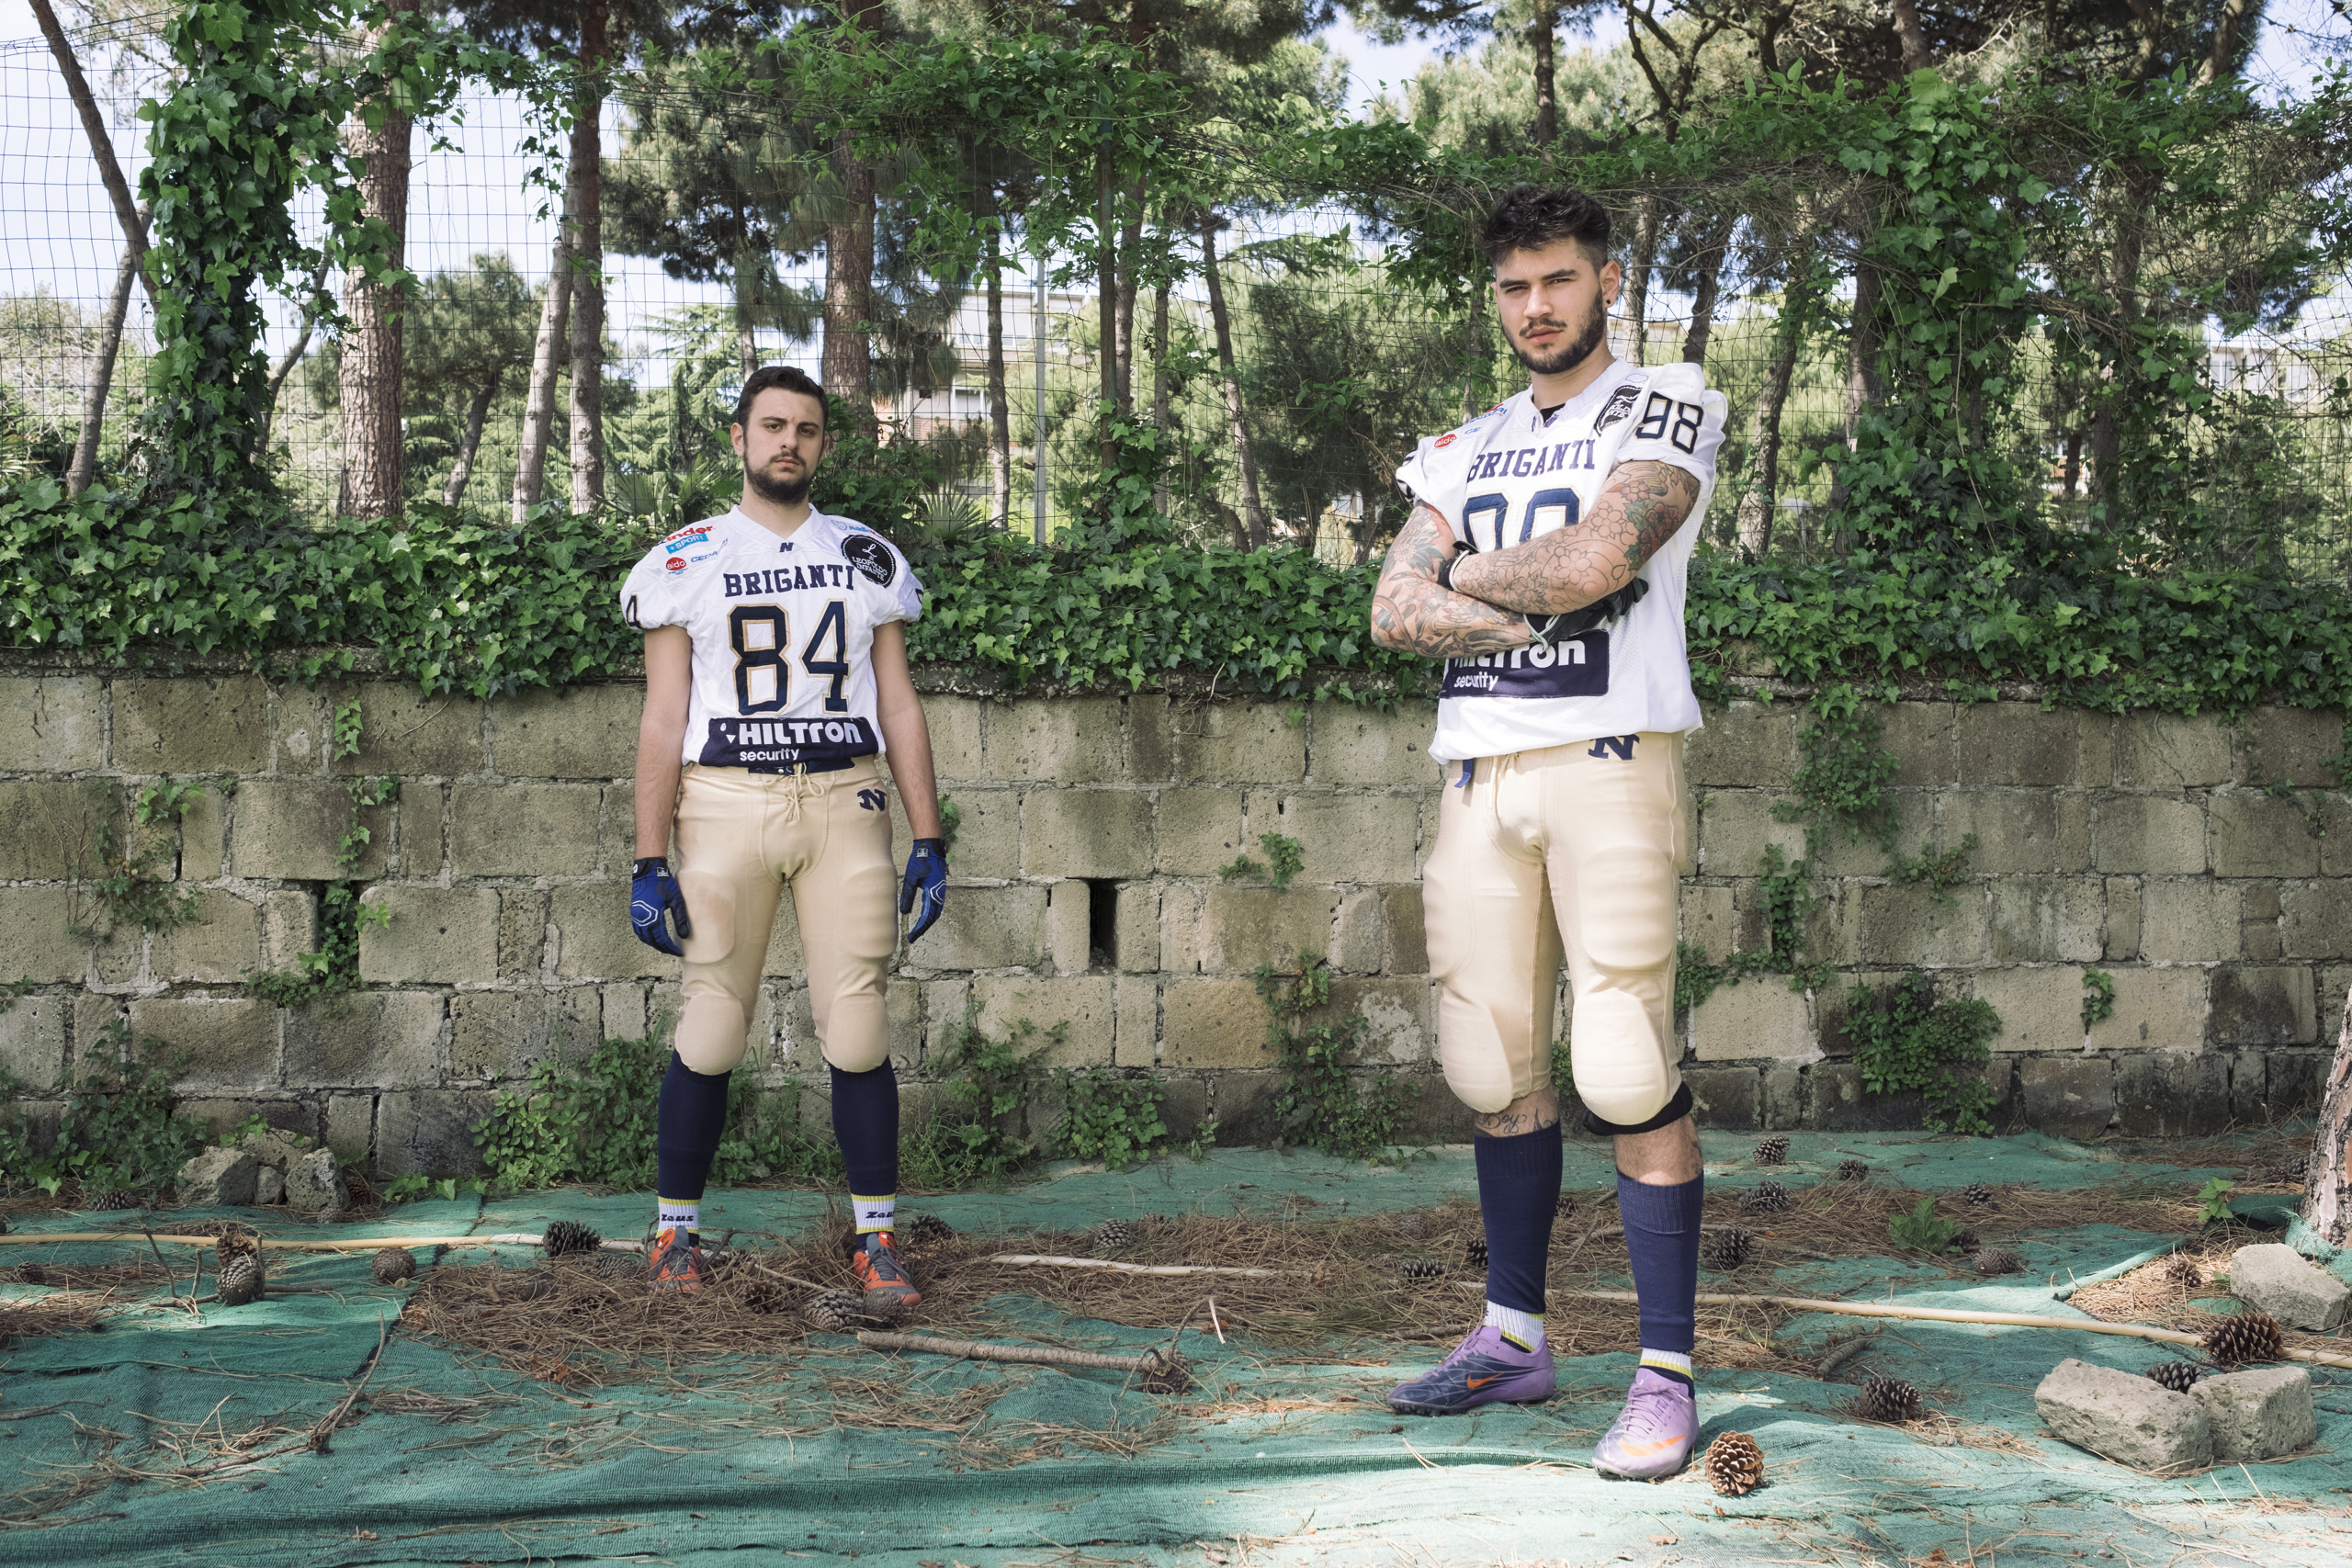 Players of the Briganti Napoli American Footbal Team before playing a regular season game, April, 2016. Briganti, or brigands, was the name associated with the people that fought against the Piedimontese soldiers during and after the unification of Italy.